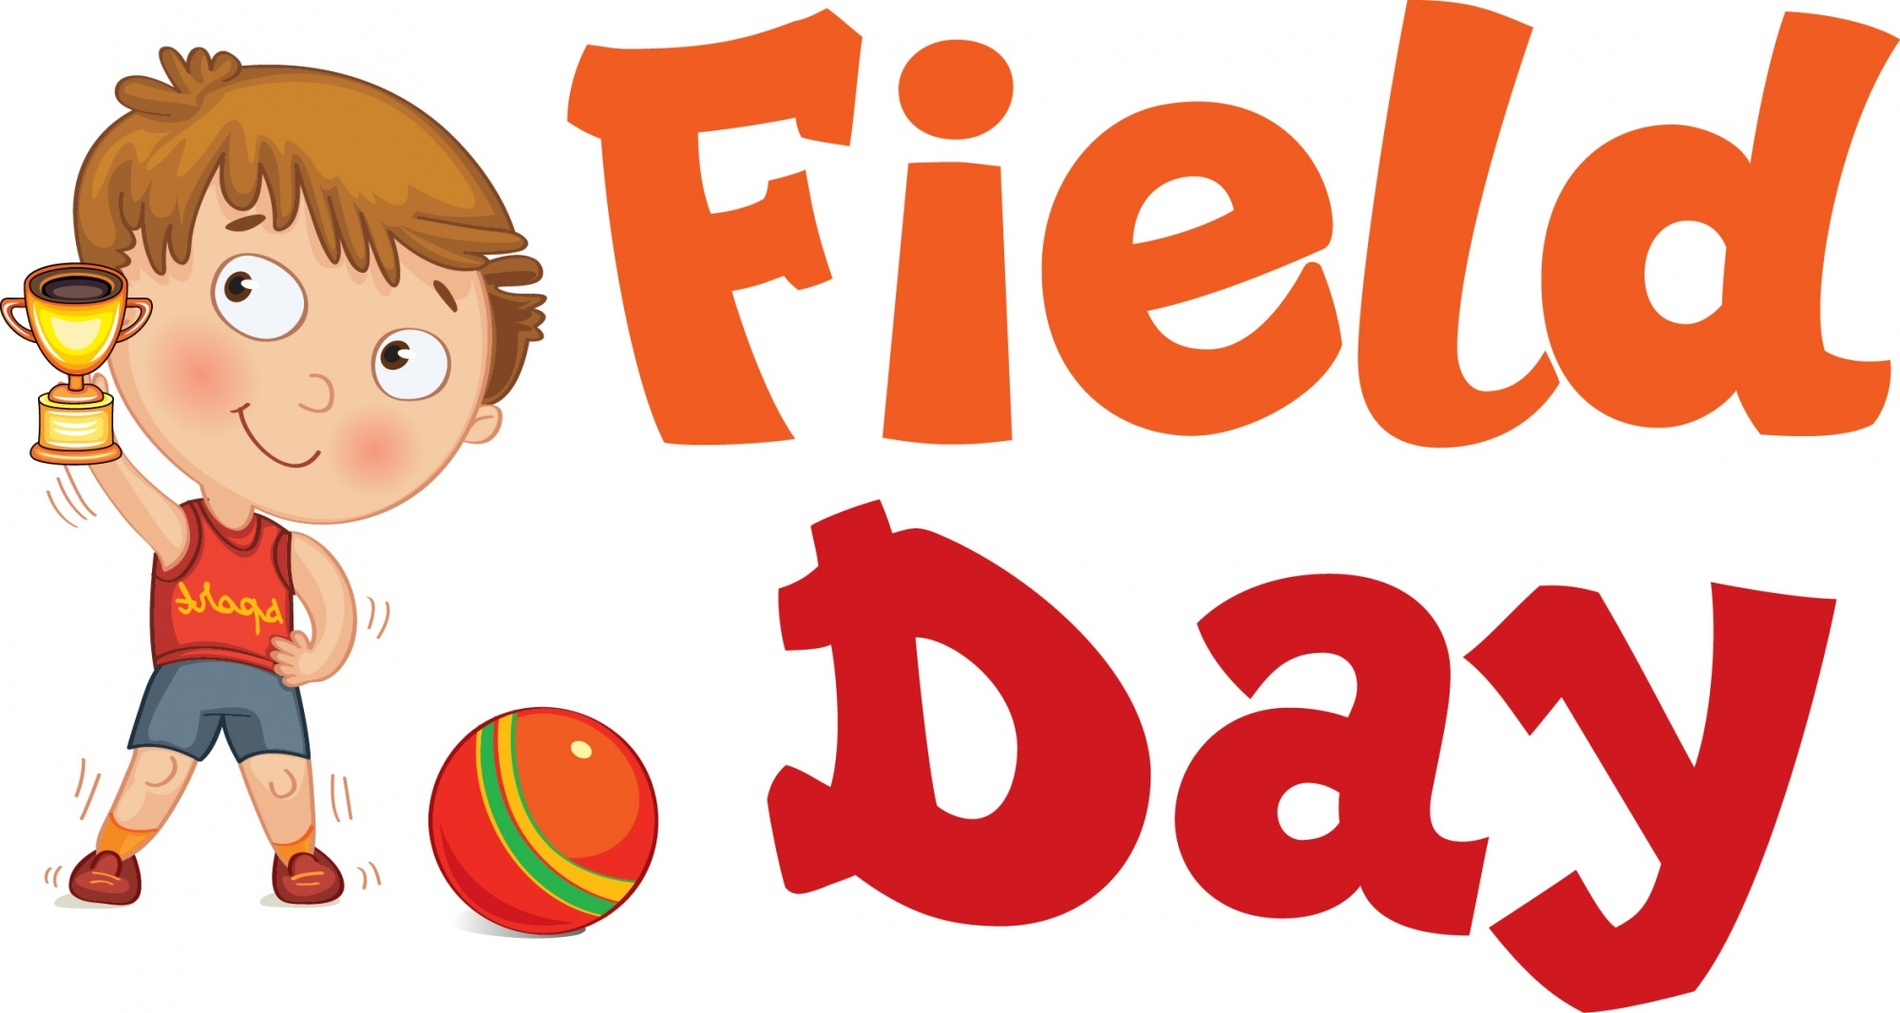 Volunteers Needed For Field Day On Frida-Volunteers Needed For Field Day On Friday May 23rd-18